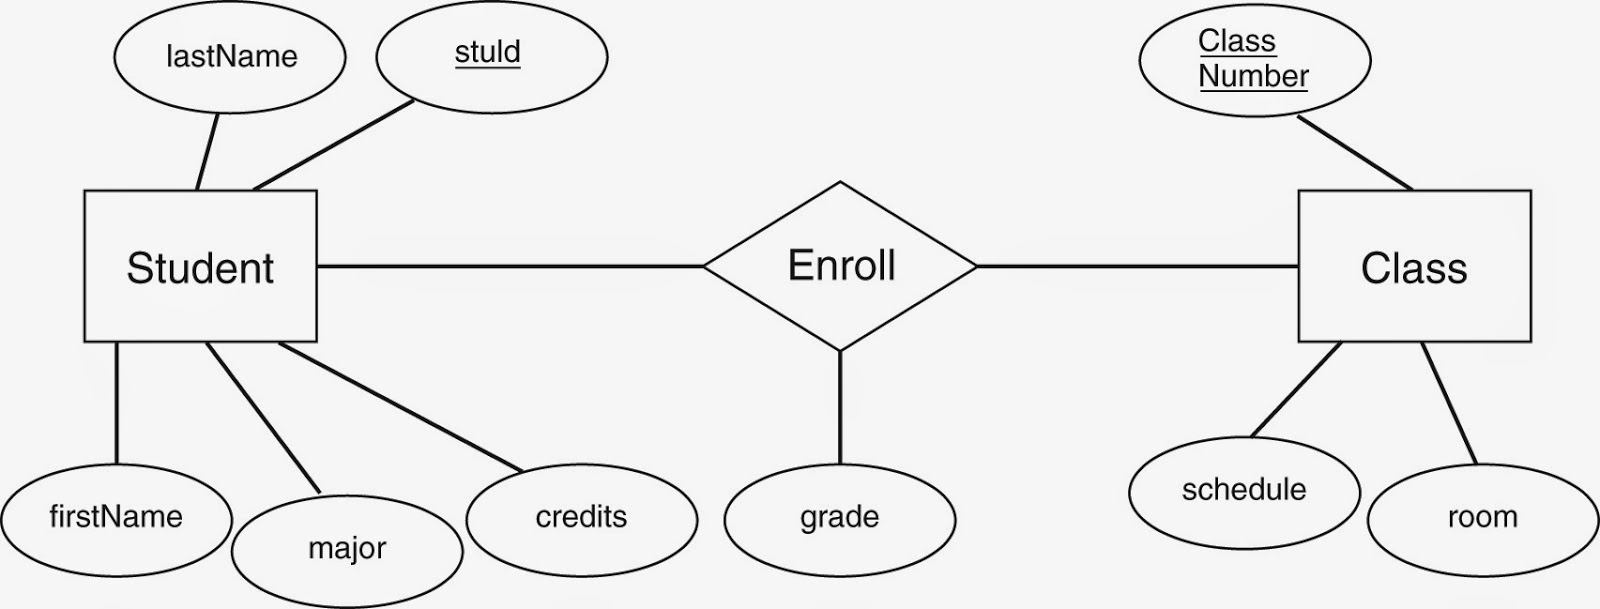 Relational Database Management System (Rdbms): Examples Of Er Diagram throughout Er Diagram Examples With Solutions In Dbms